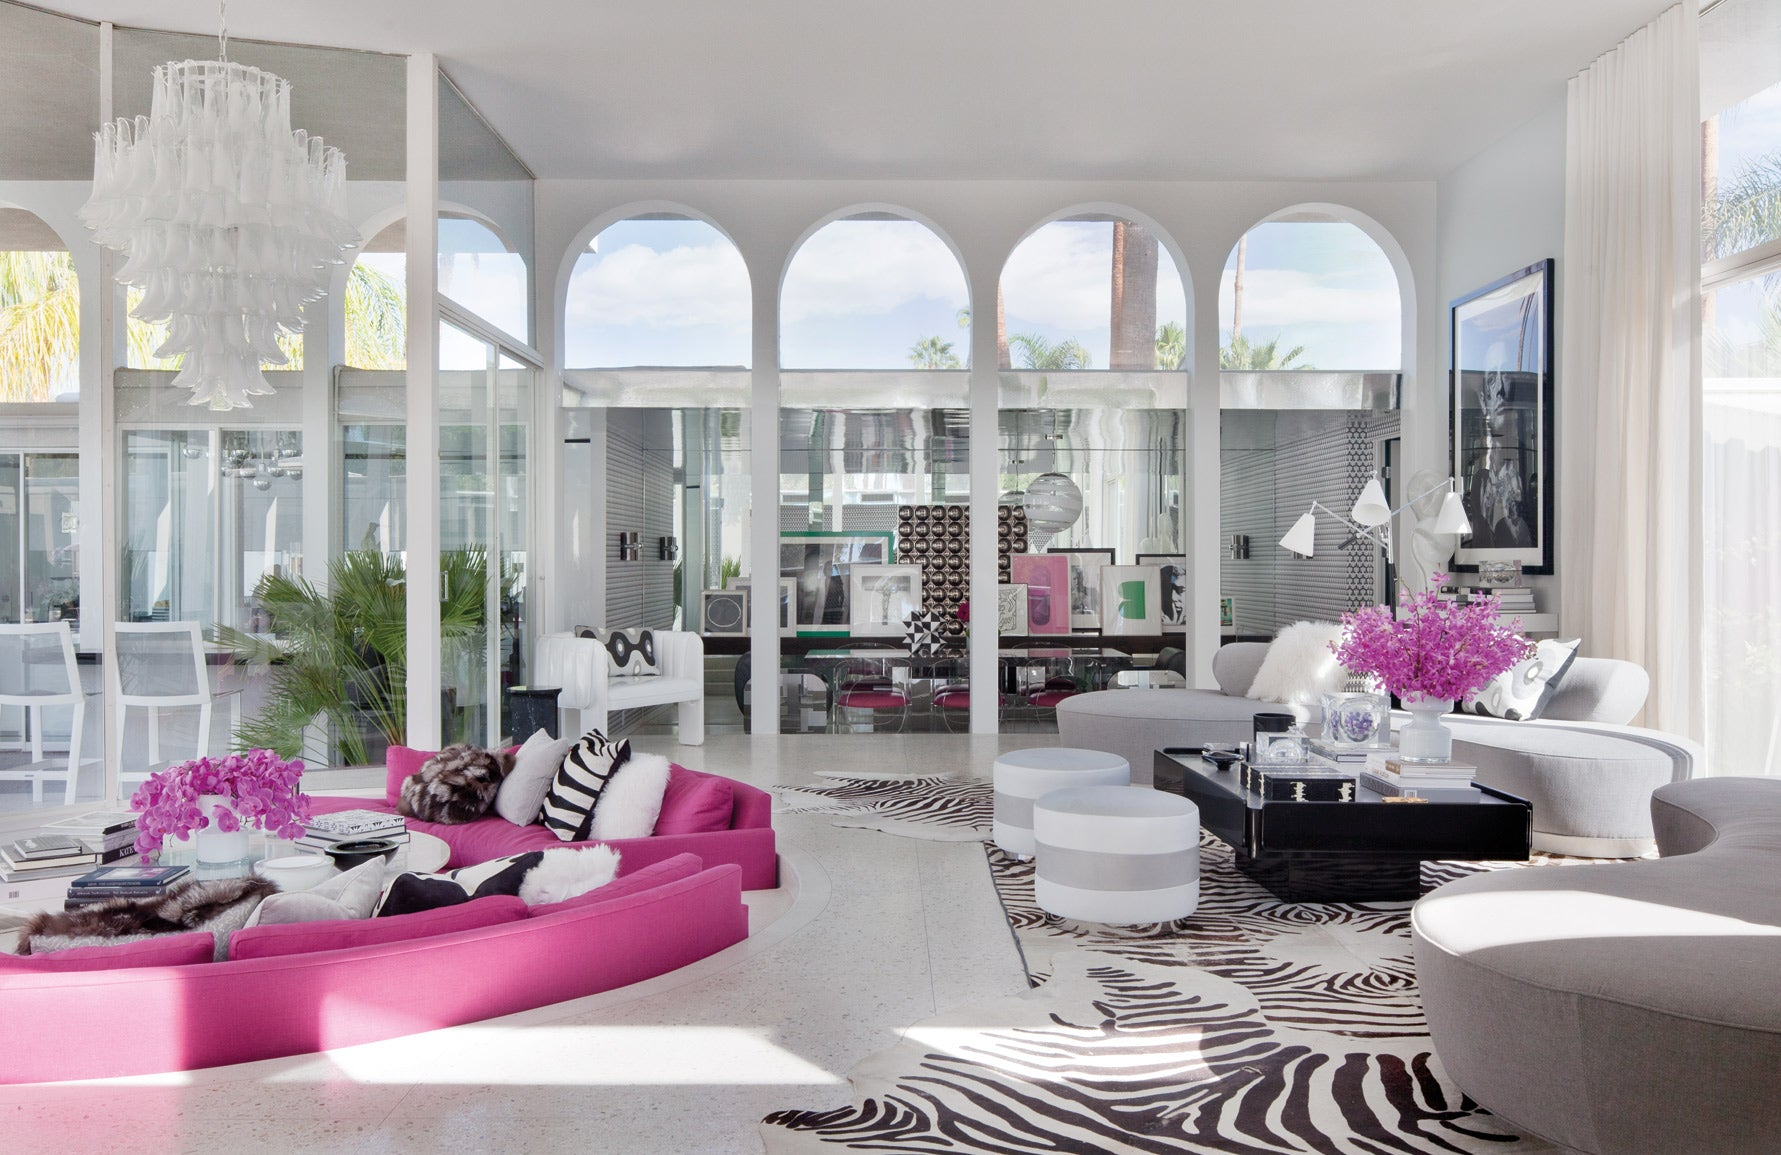 Martyn Lawrence Bullard home | Celebrity interior designer | Pink and white living room | Read more in The Luxurist at LuxDeco.com